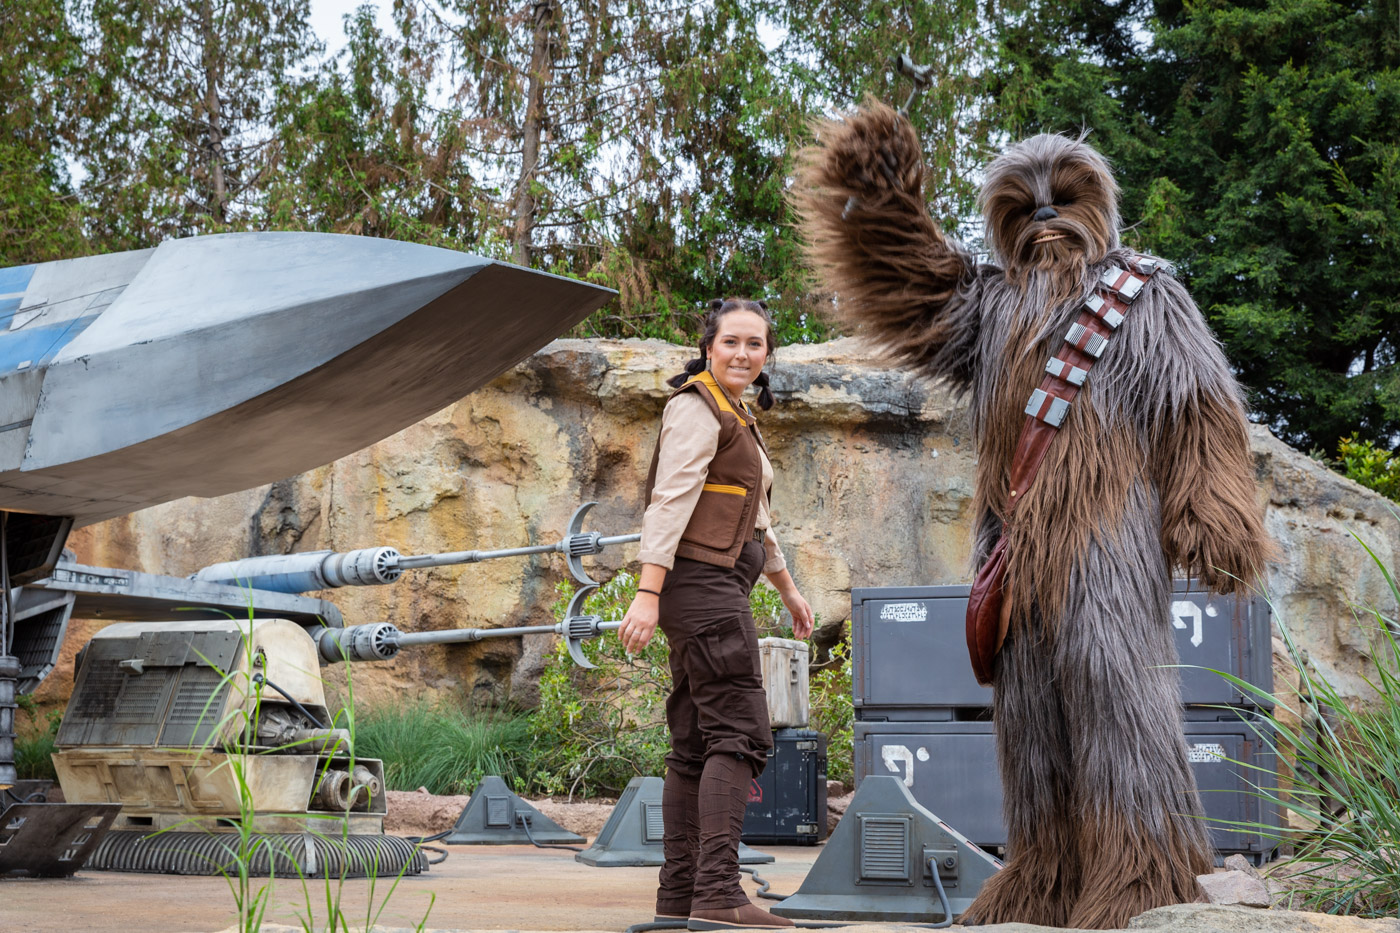 Chewy inside Disneyland's Galaxy's Edge